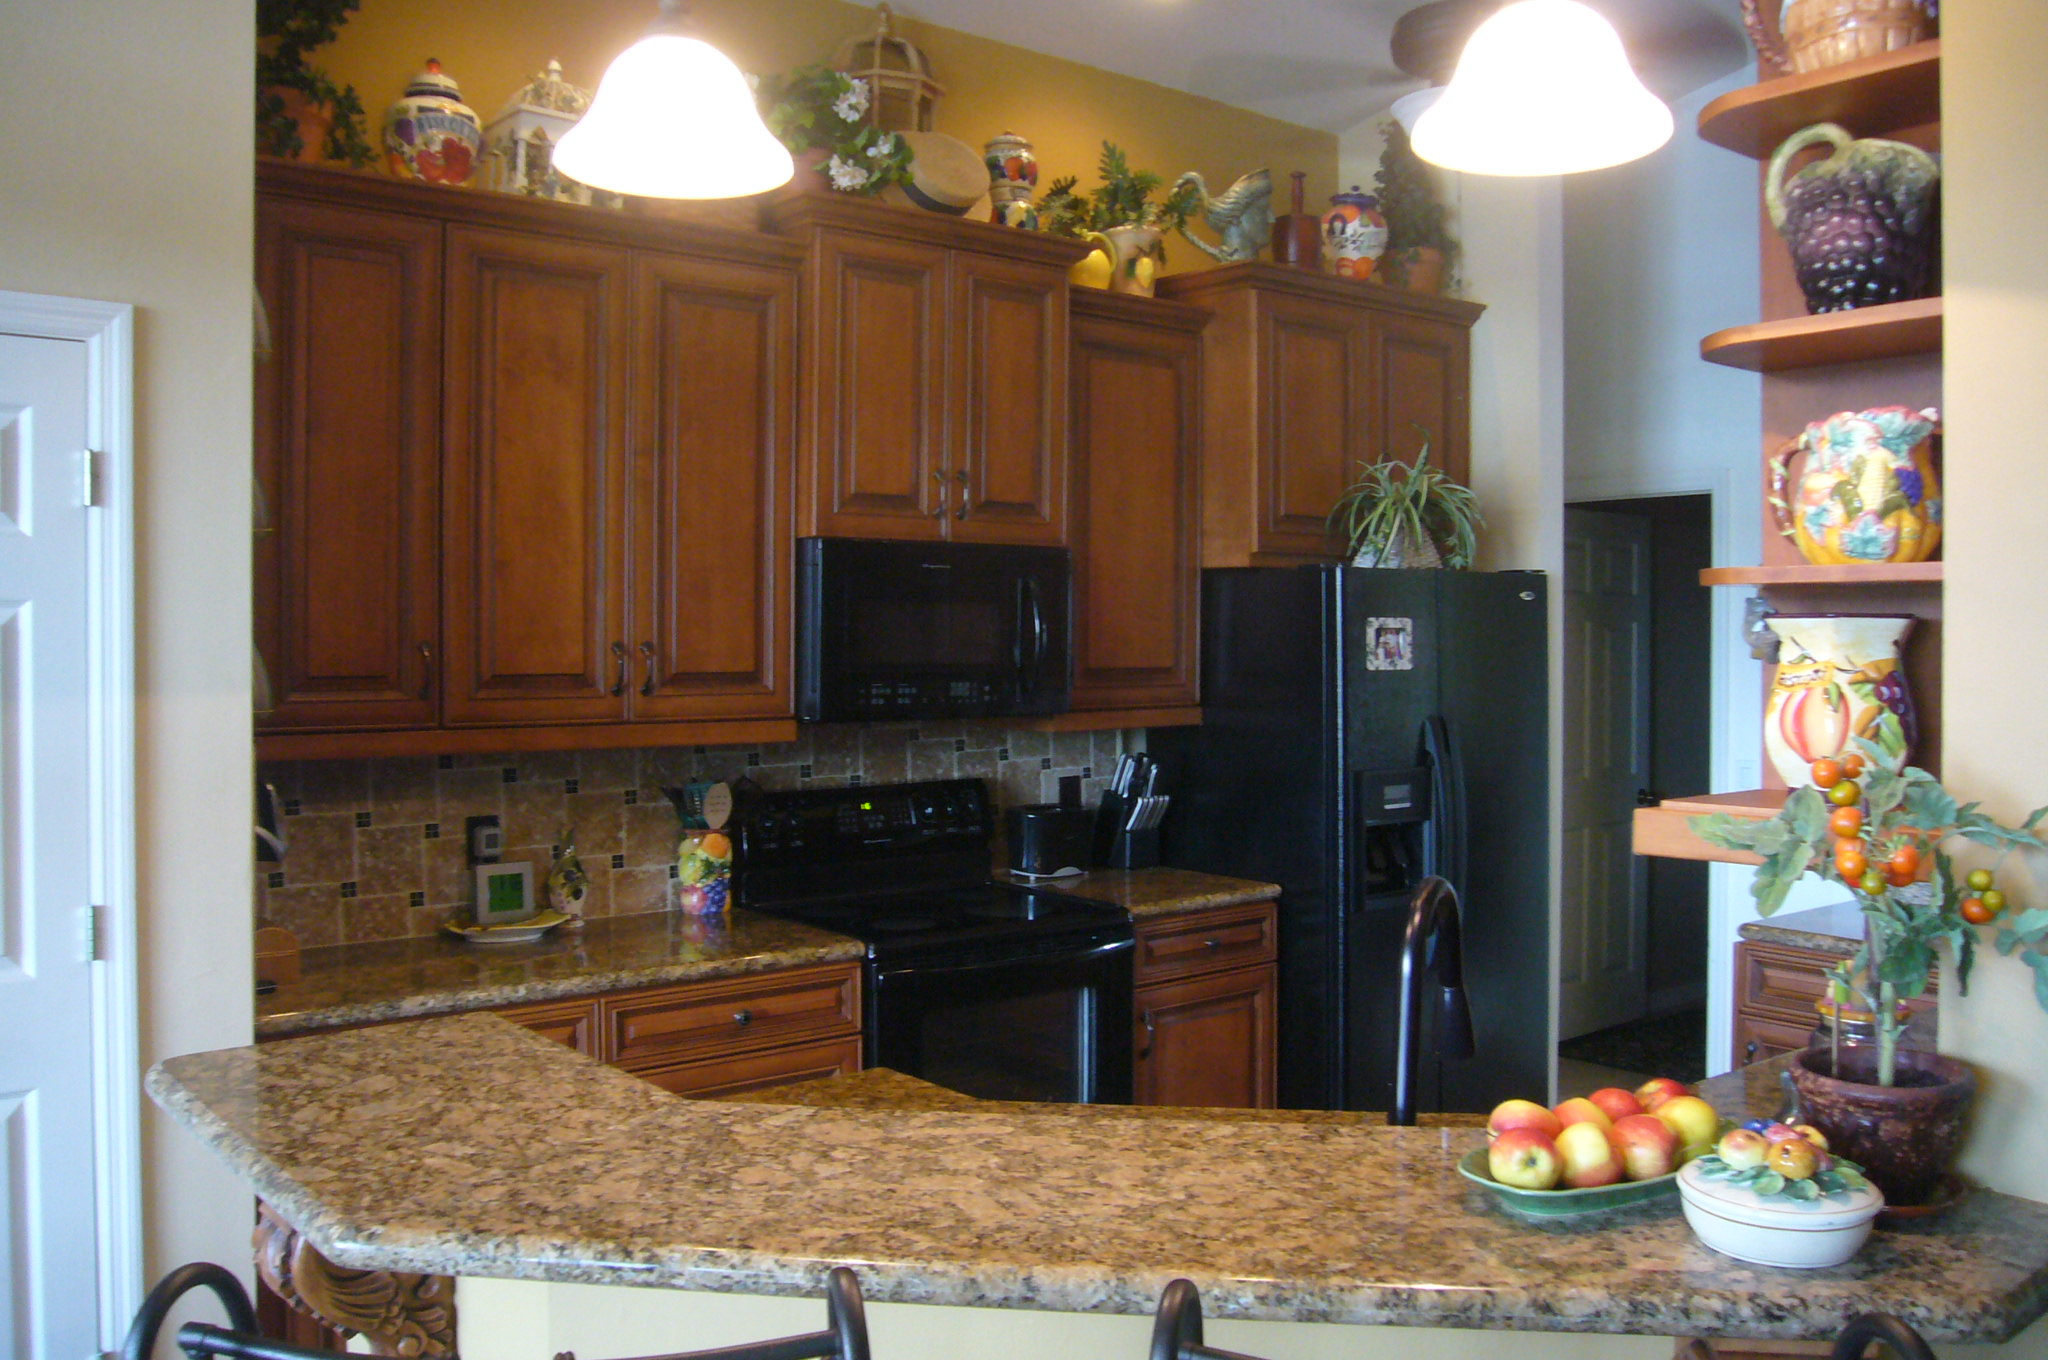 Custom Kitchen cabinets Naples fl, Refacing Kitchen, counter tops